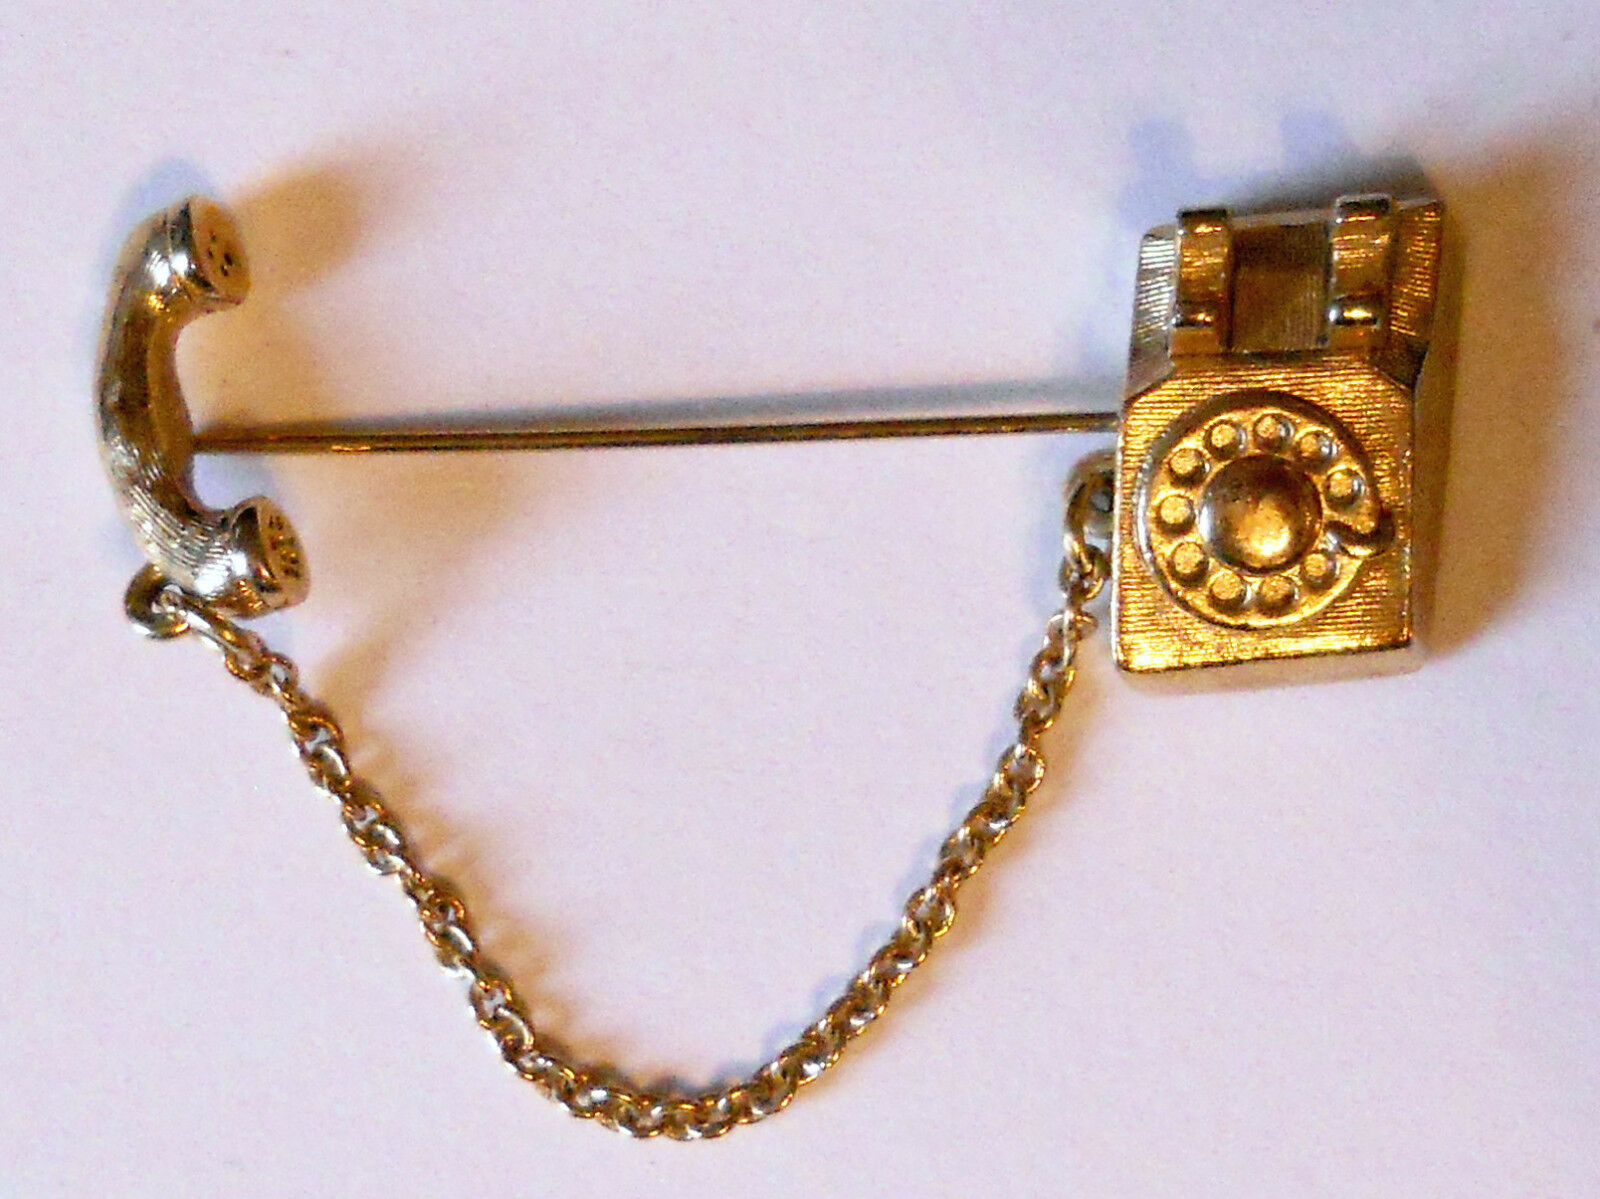 Primary image for Avon Telephone Stick Pin Rotary Dial Phone Gold Tone Chatelaine Chain 1980's VTG